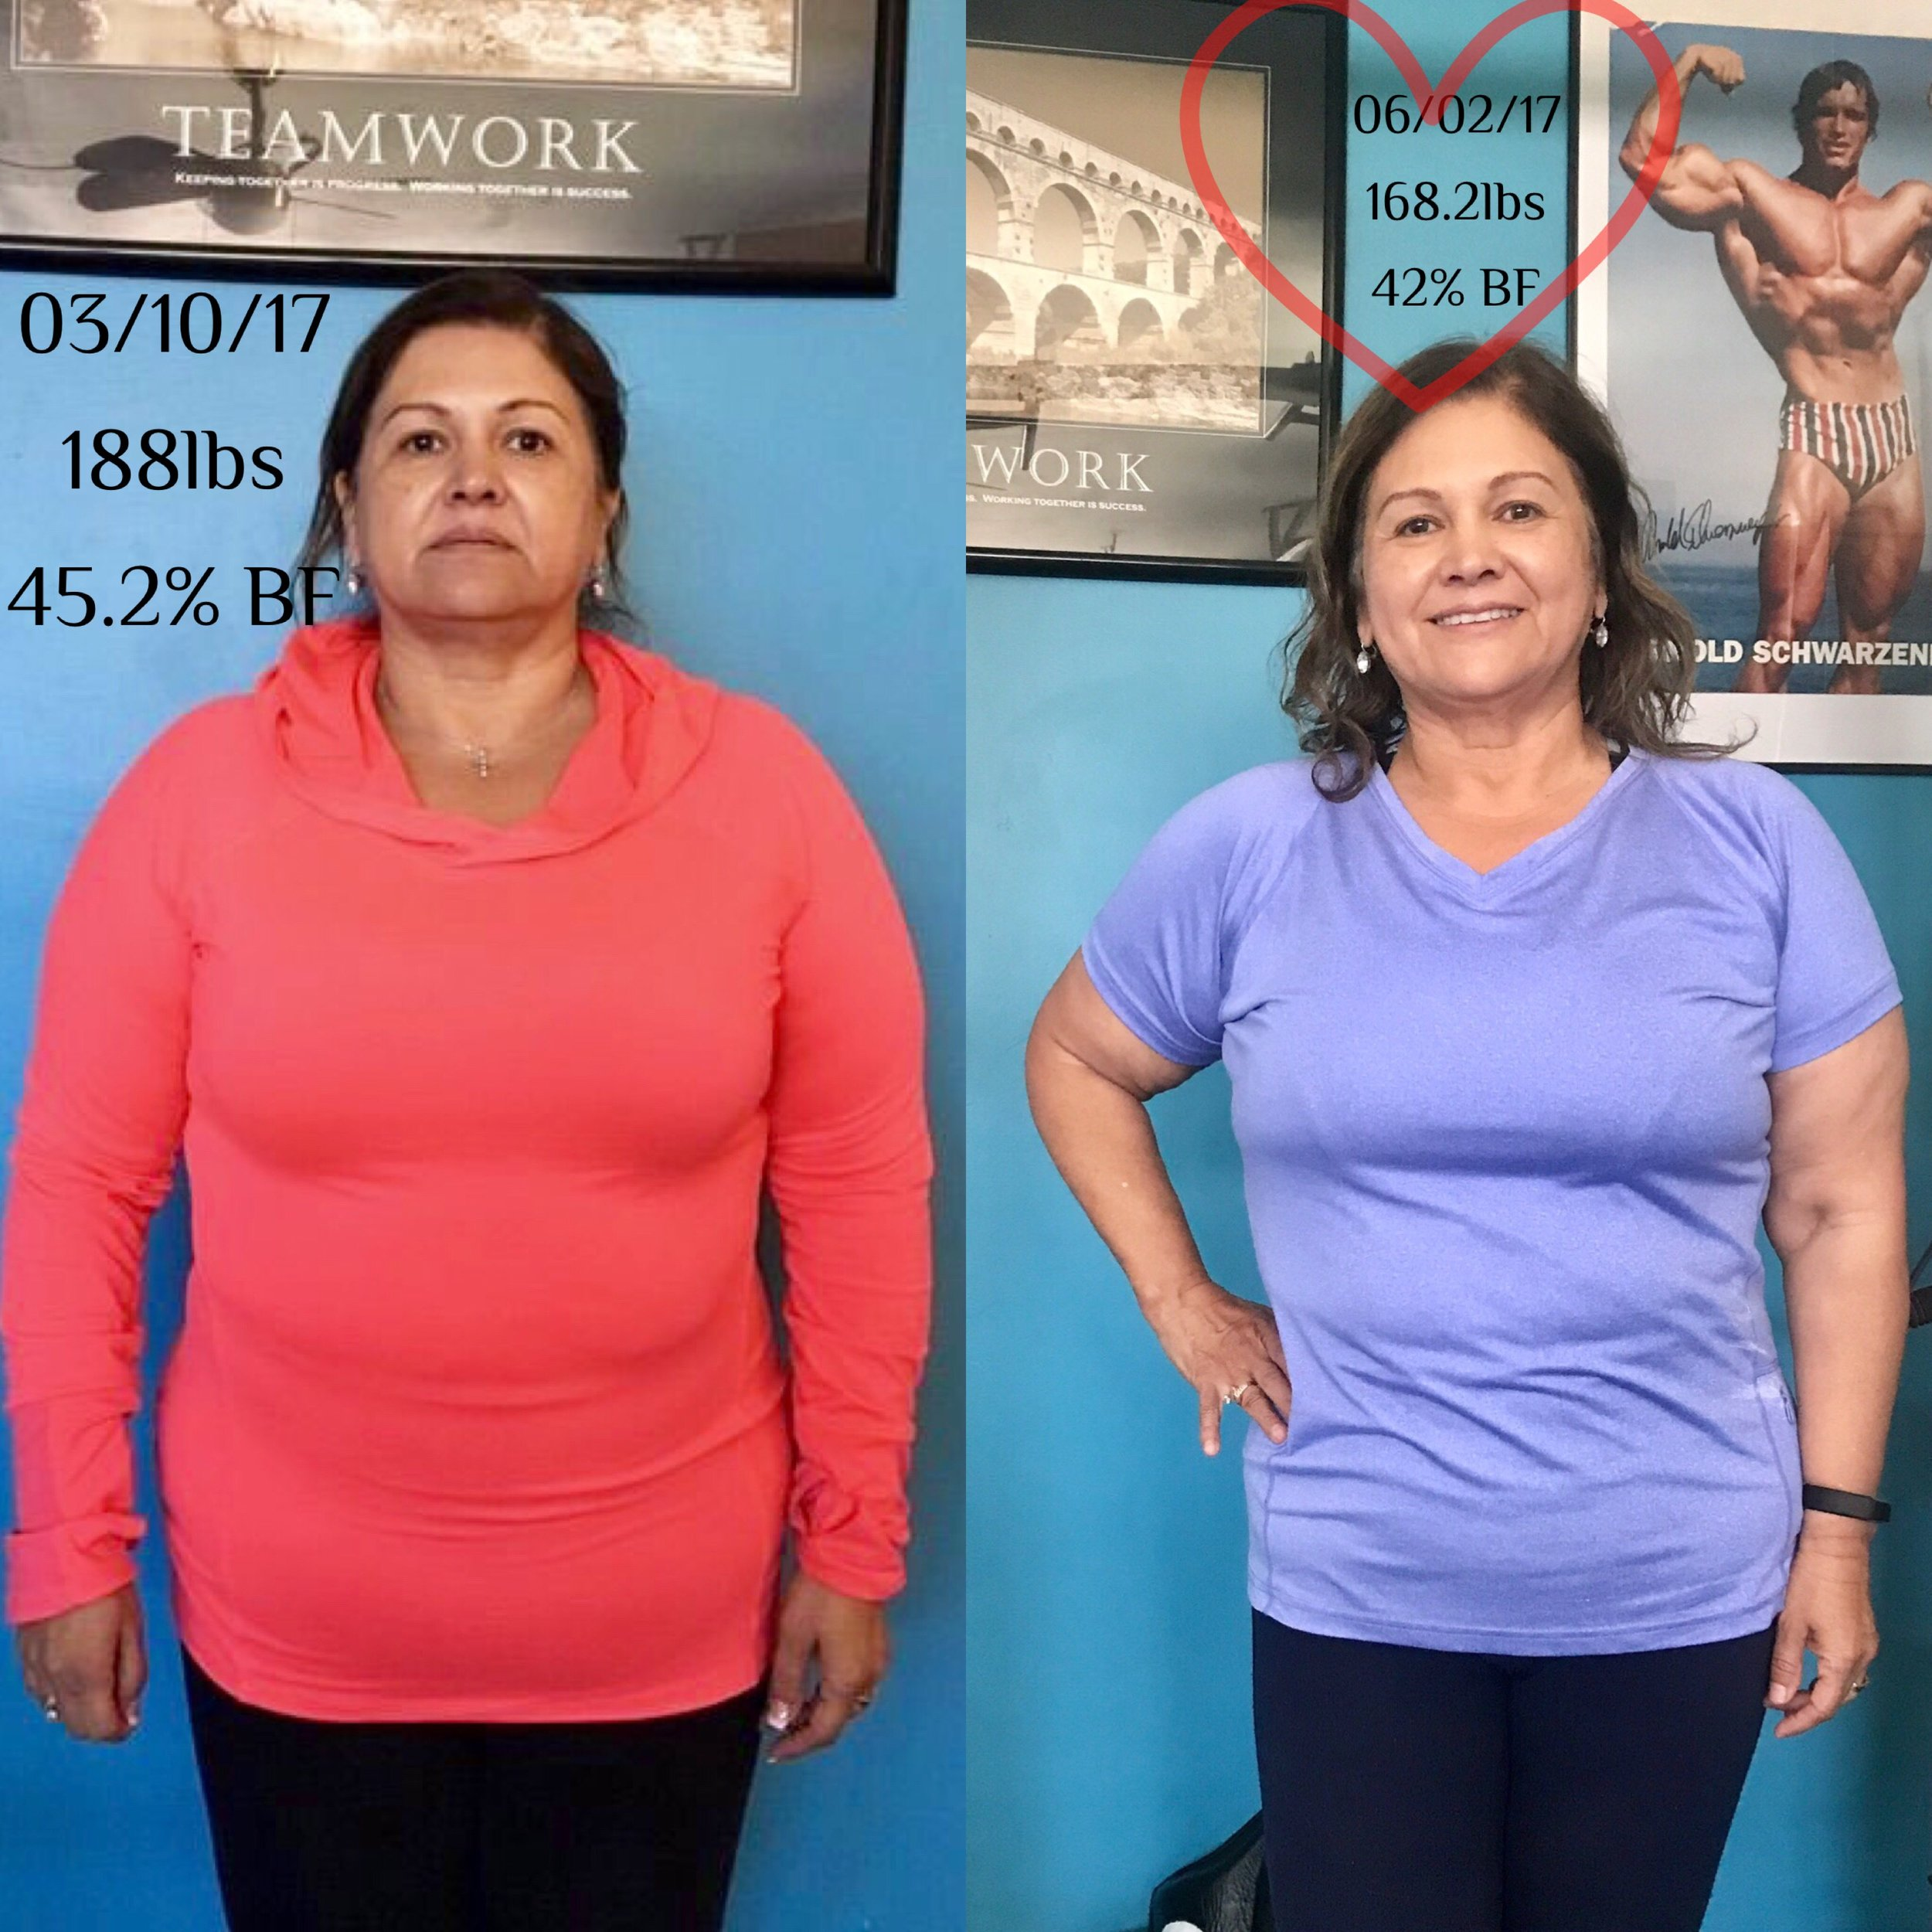 ELVIRA BEGAN HER JOURNEY MARCH 10, AT 188LBS AND JUNE 02, SHE WAS ABLE TO LOSE A TOTAL OF 20 LBS TO FEEL MORE CONFIDENT, FOCUS AND HAPPY WITH HOW SHE LOOKED.